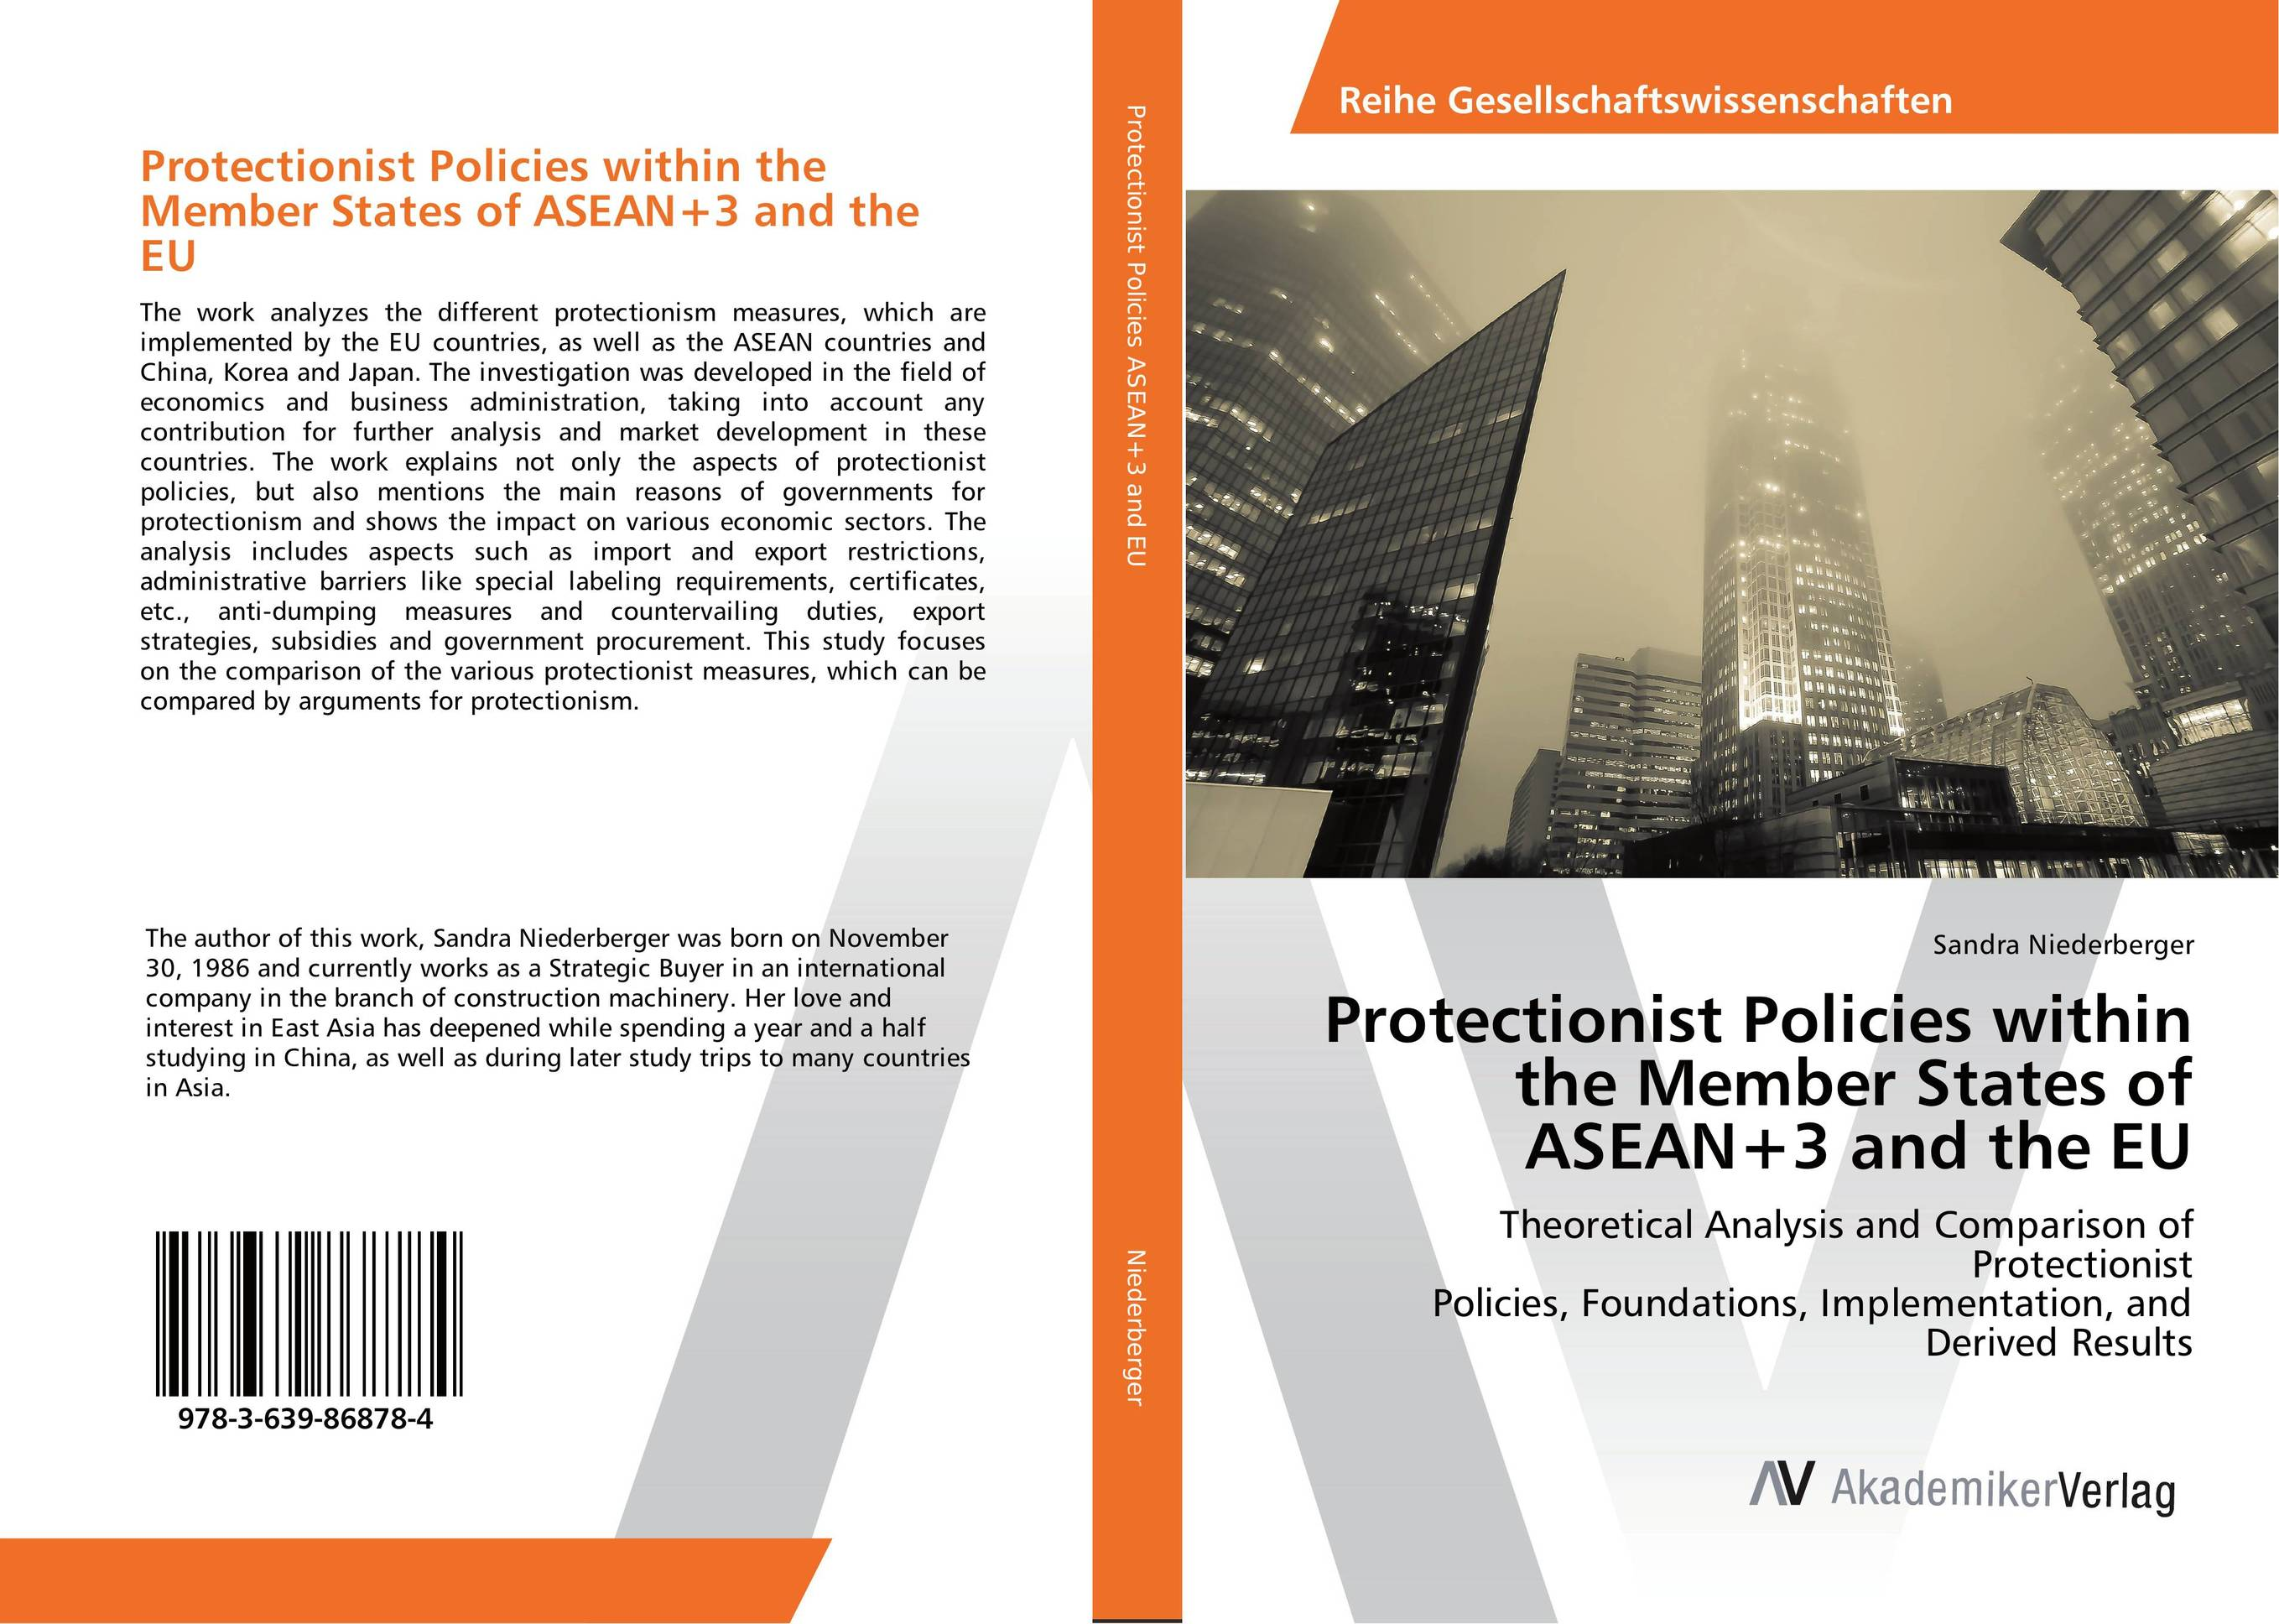 Protectionist Policies within the Member States of ASEAN+3 and the EU